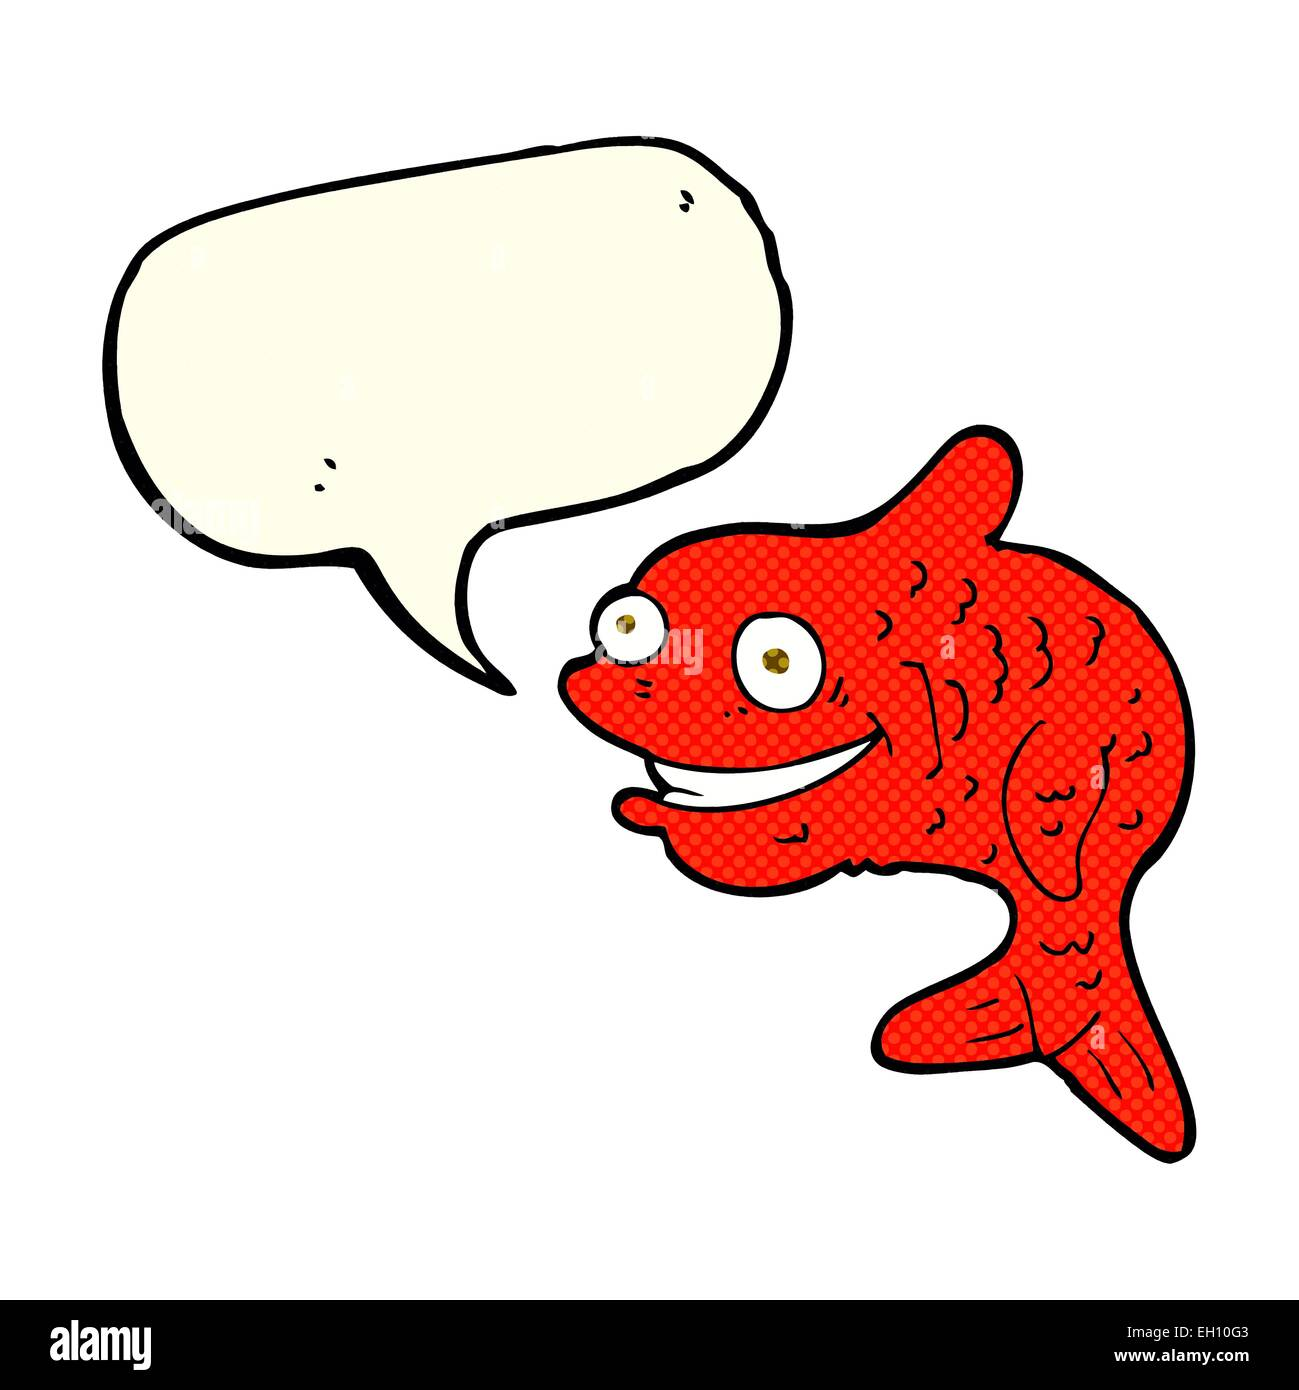 Cartoon Happy Goldfish Bubble Stock Photos & Cartoon Happy Goldfish ...